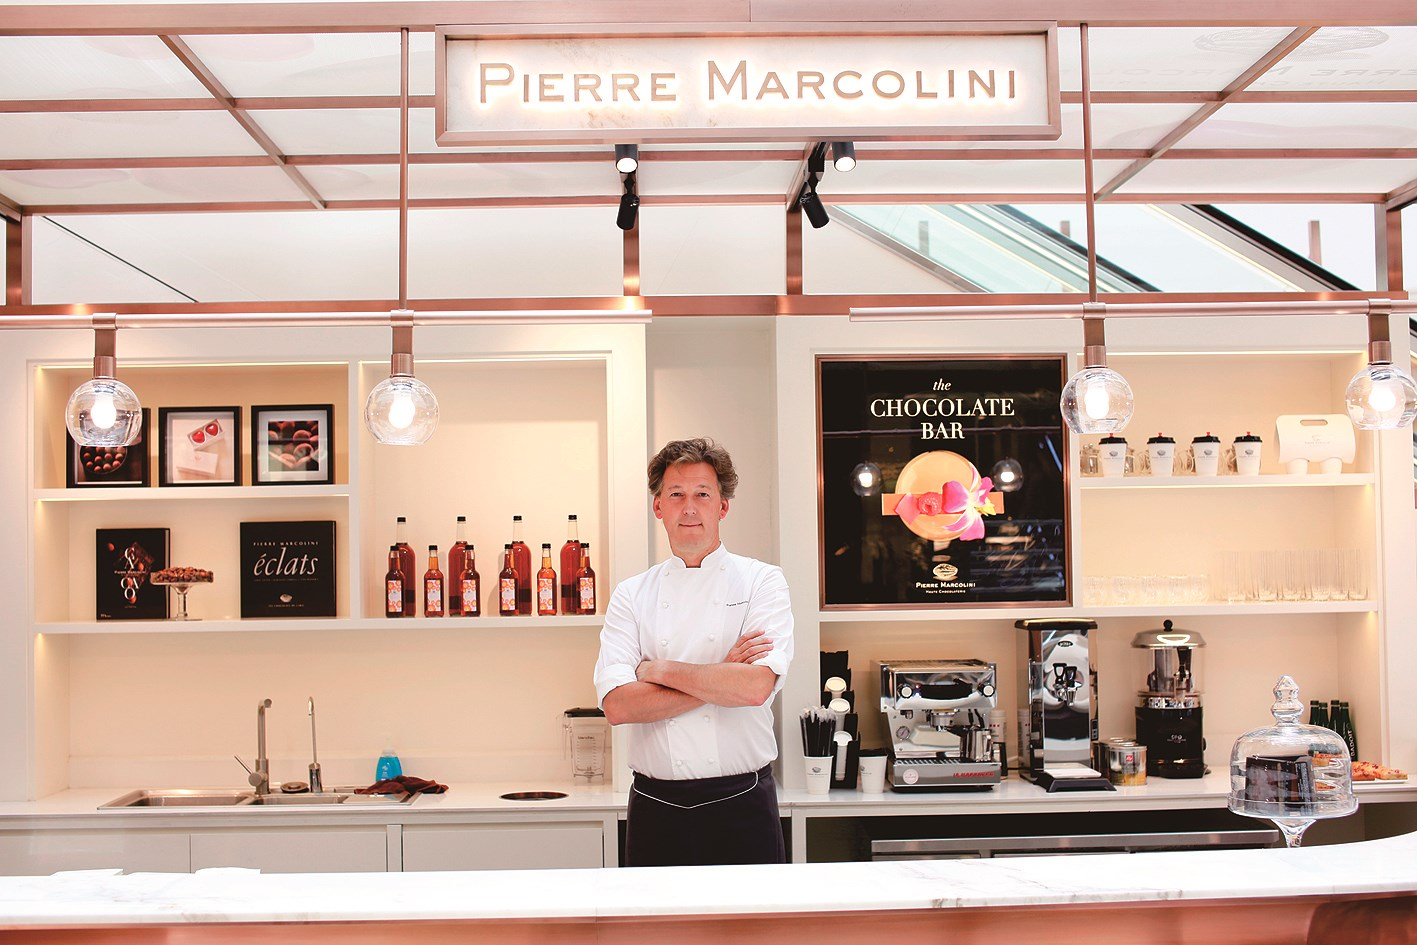 Pierre Marcolini launches his new store at Plaza 66 on June 14.